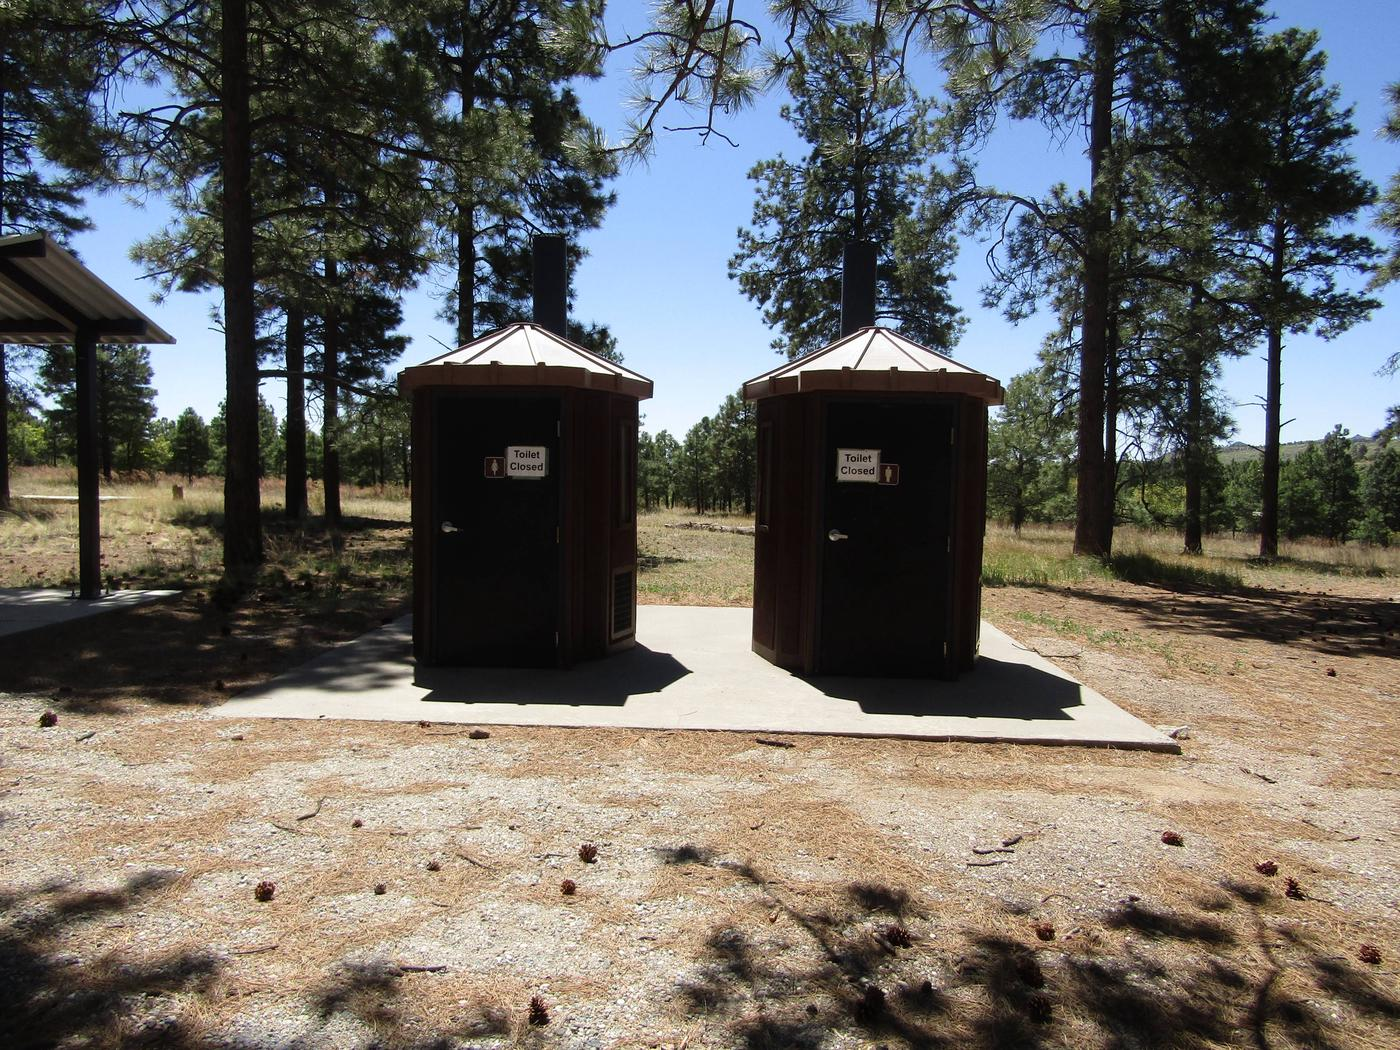 Vault toilets in front of tall pinesVault toilets are available to campers at Ponderosa Group Campground. No running water in restrooms or shower facilities are available.